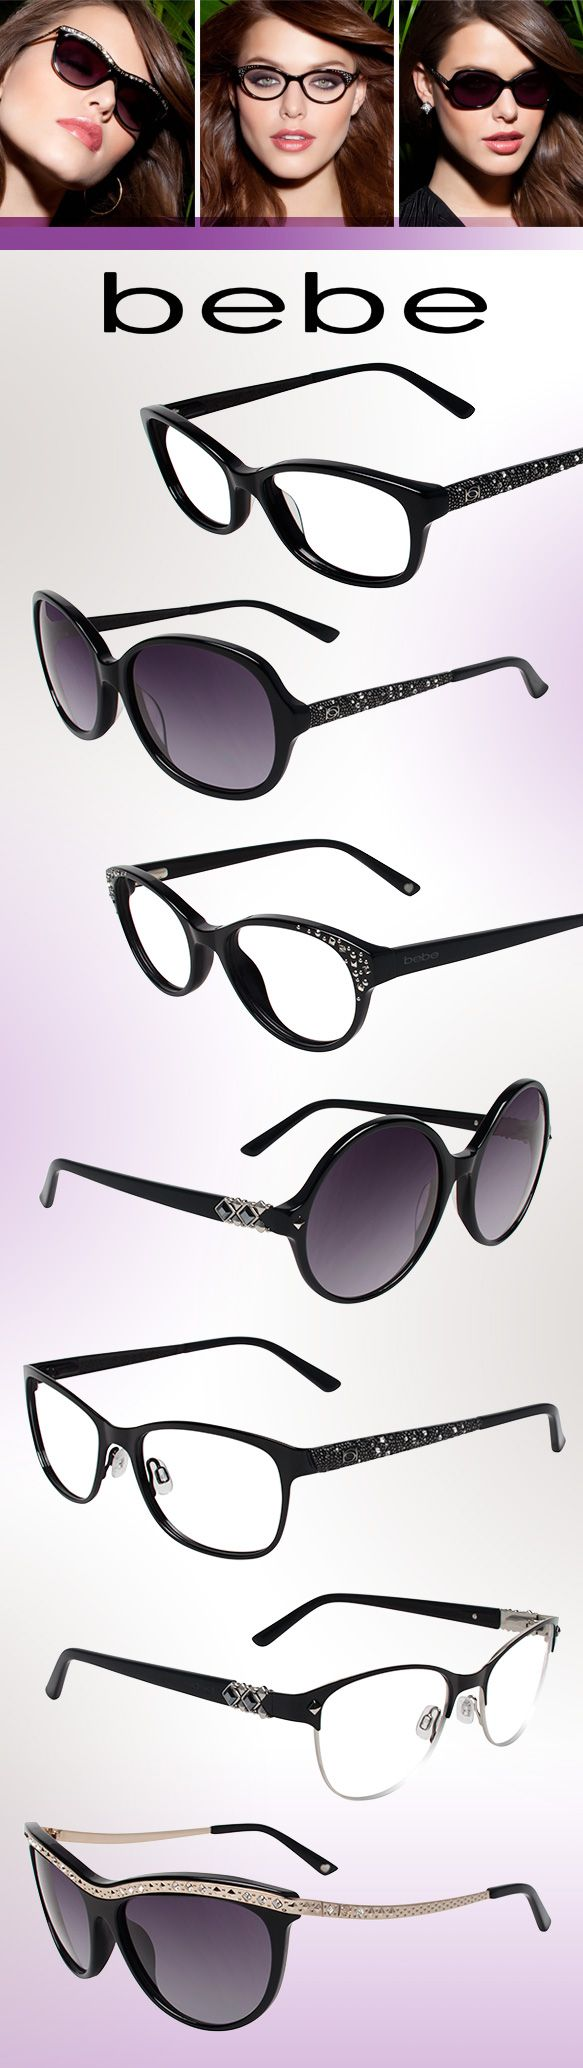 Get Blinged Out in bebe Black: http://eyecessorizeblog.com/?p=5663Bebe Black